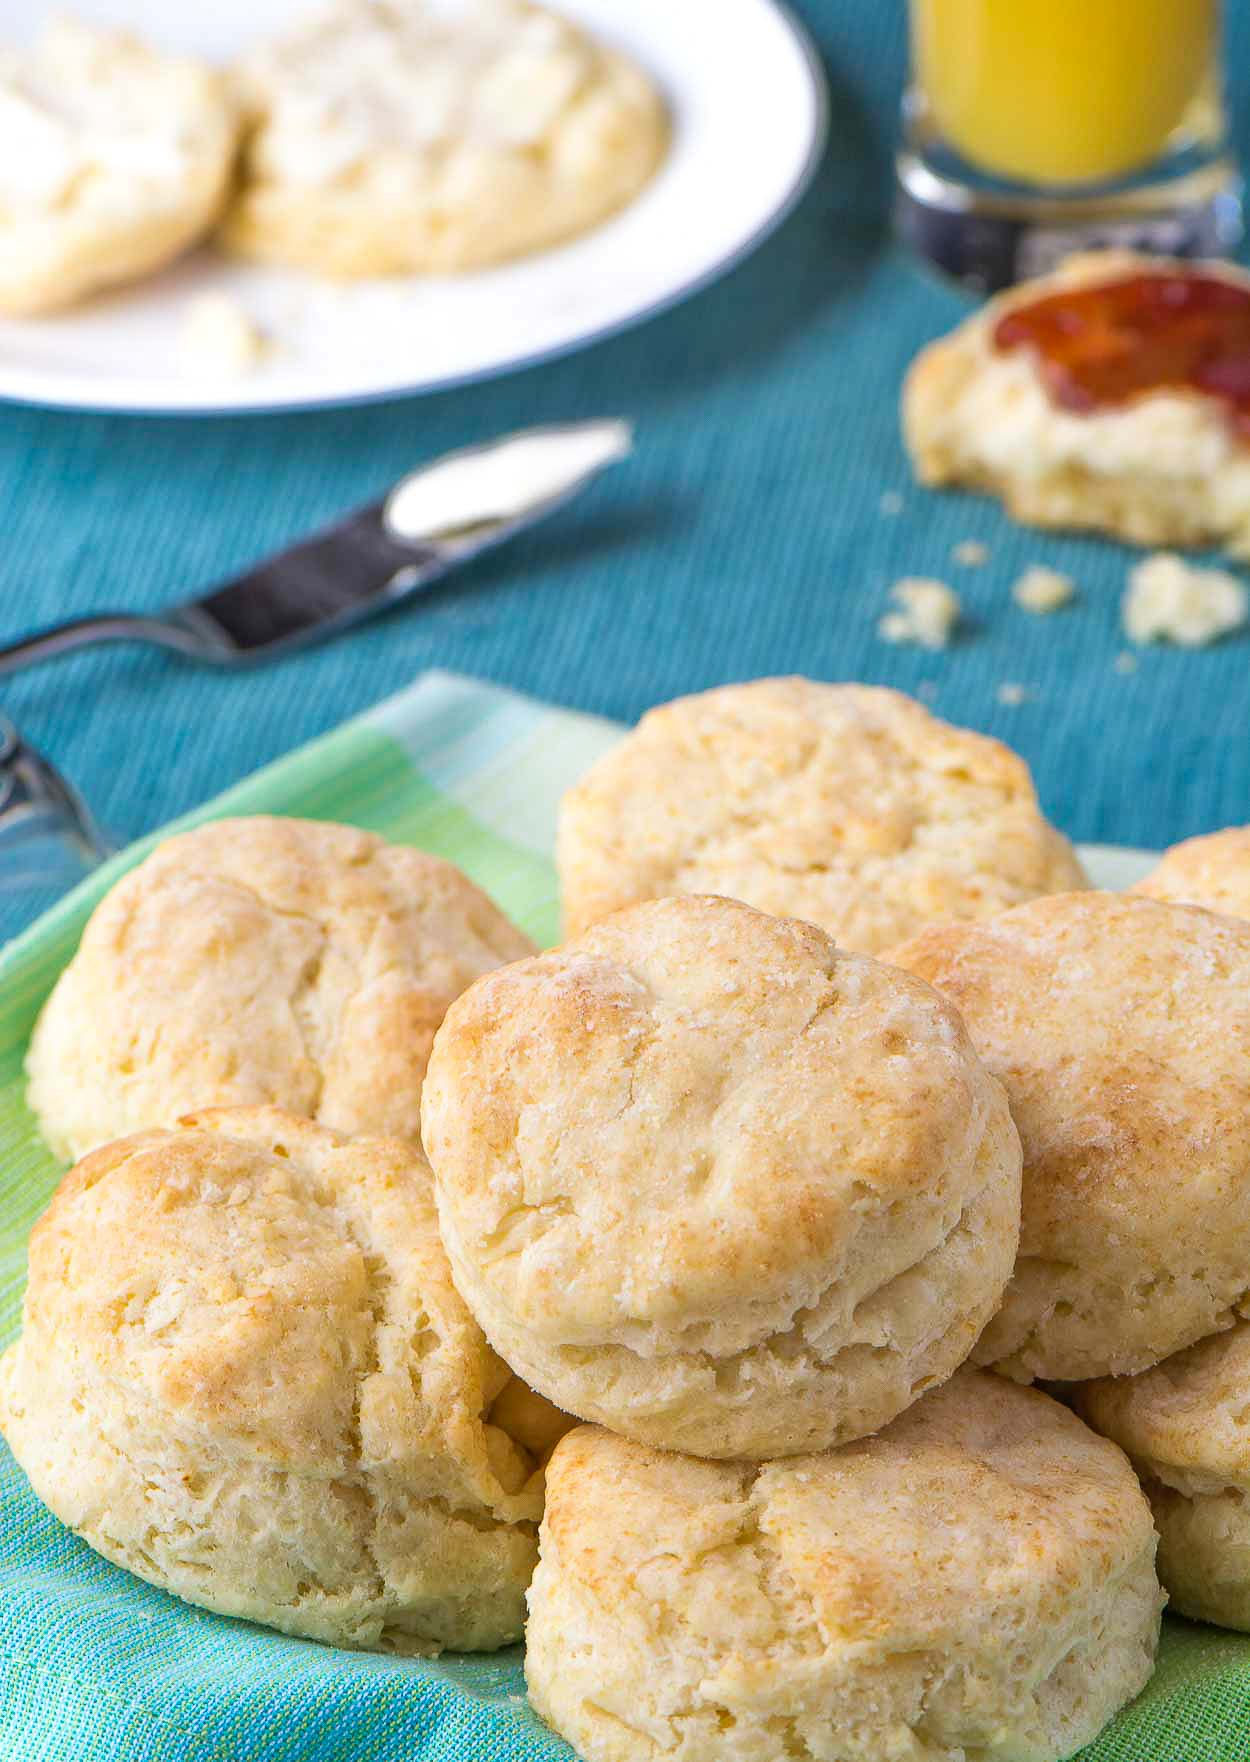 Made from scratch buttermilk biscuits